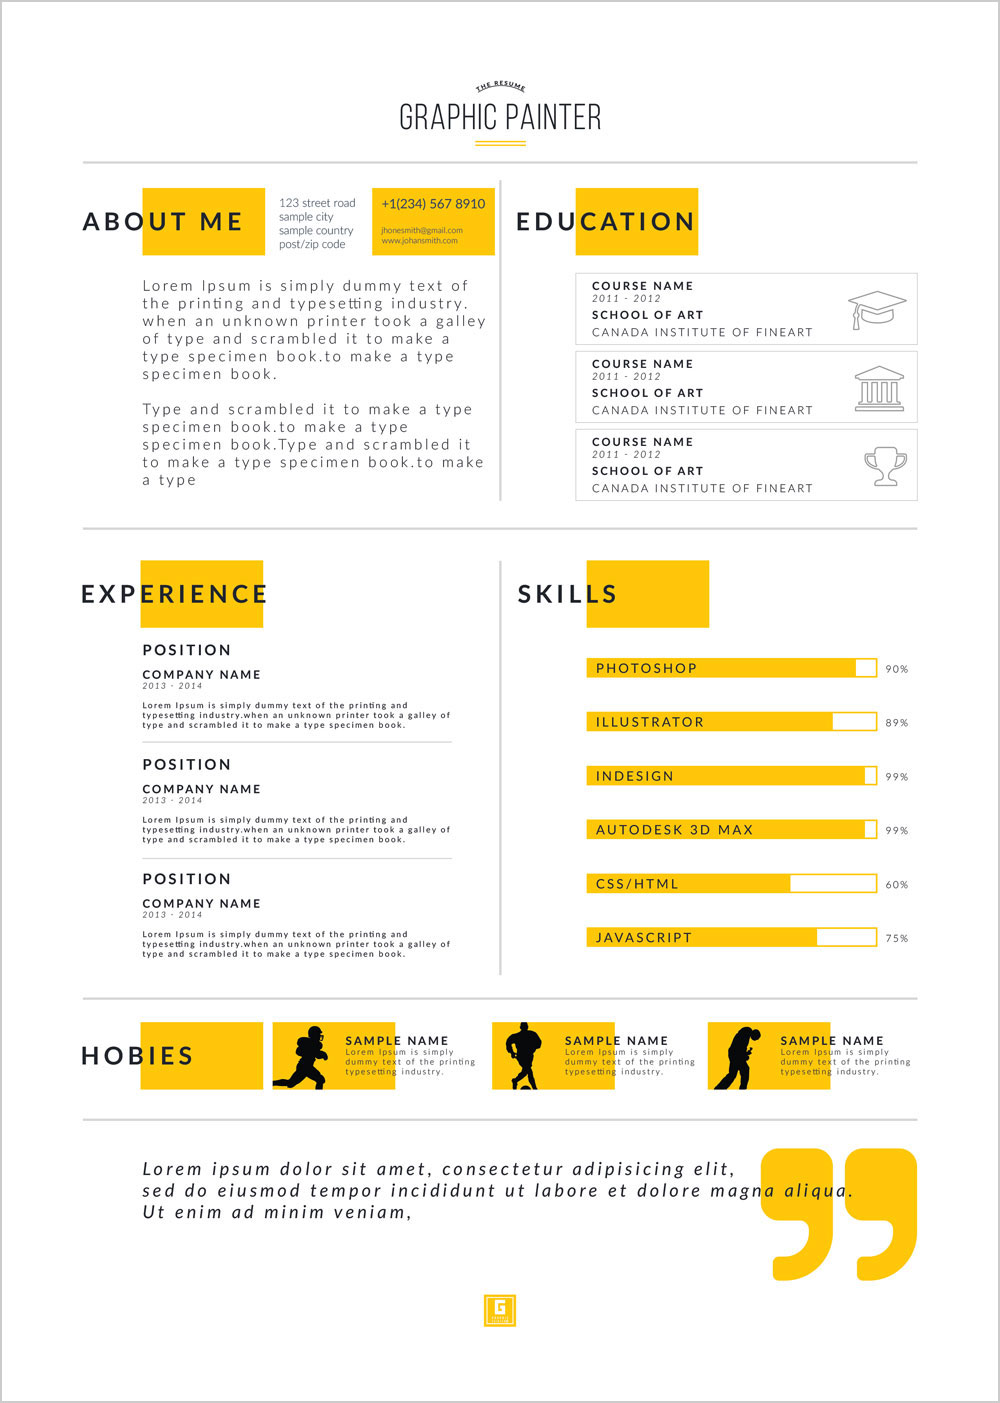 Free-Dark-&-Light-PSD-&-Word-Resume-Template,-Cover-Letter-&-Portfolio-Design (5)